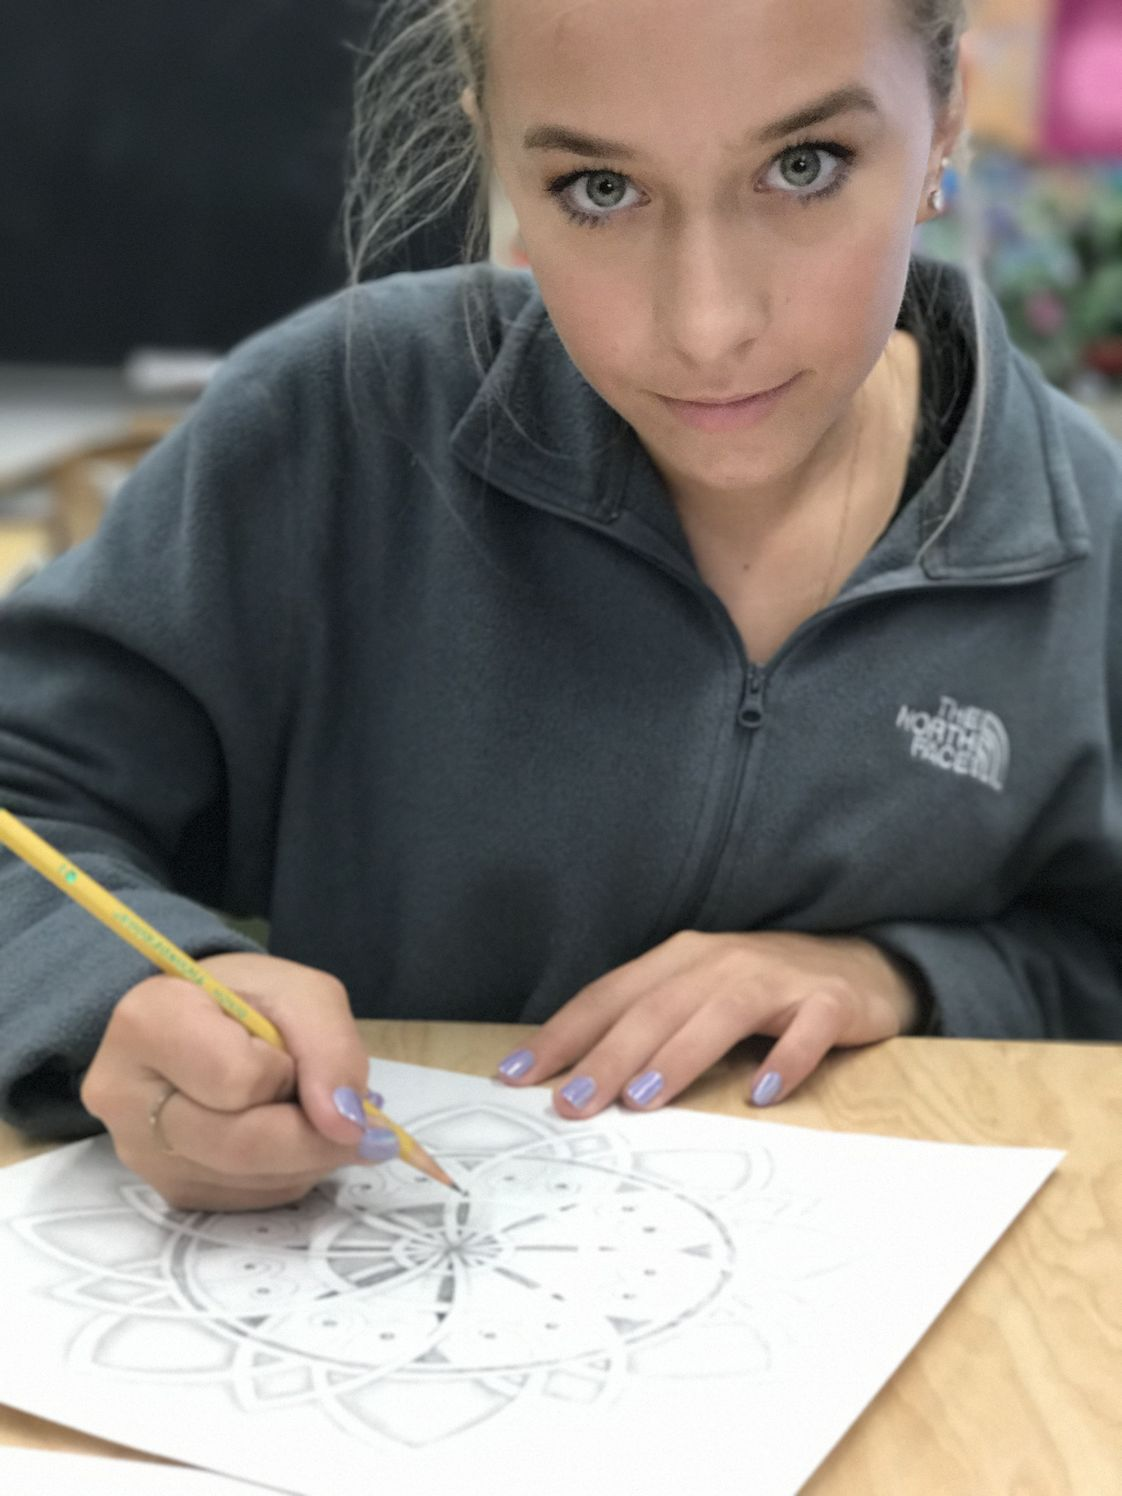 Bishop Seabury Academy Photo - We have an award winning fine arts program!http://www.seaburyacademy.org/arts/index.cfm